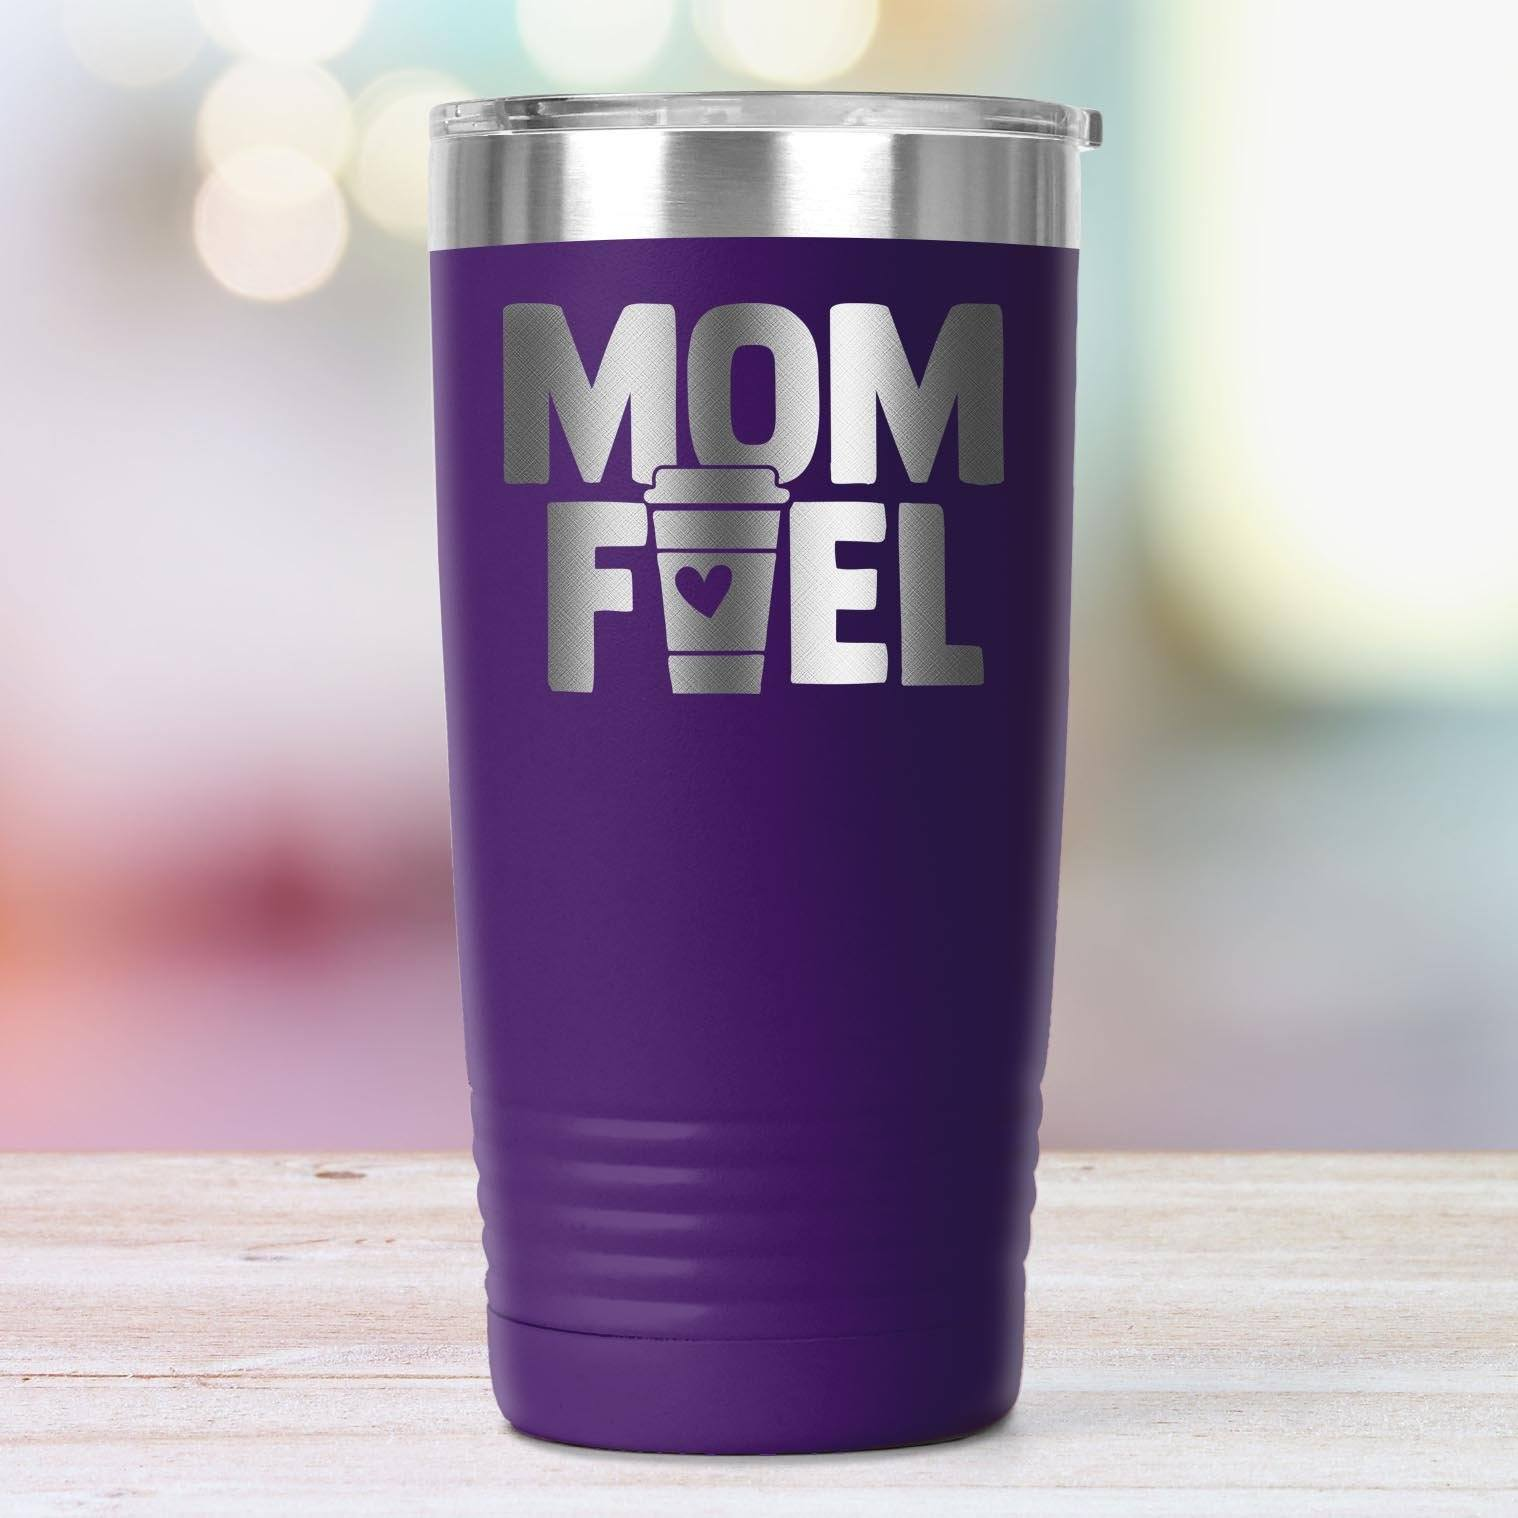 Mom Fuel Bold • 20oz. Insulated Coffee Tumbler Tumblers teelaunch Purple